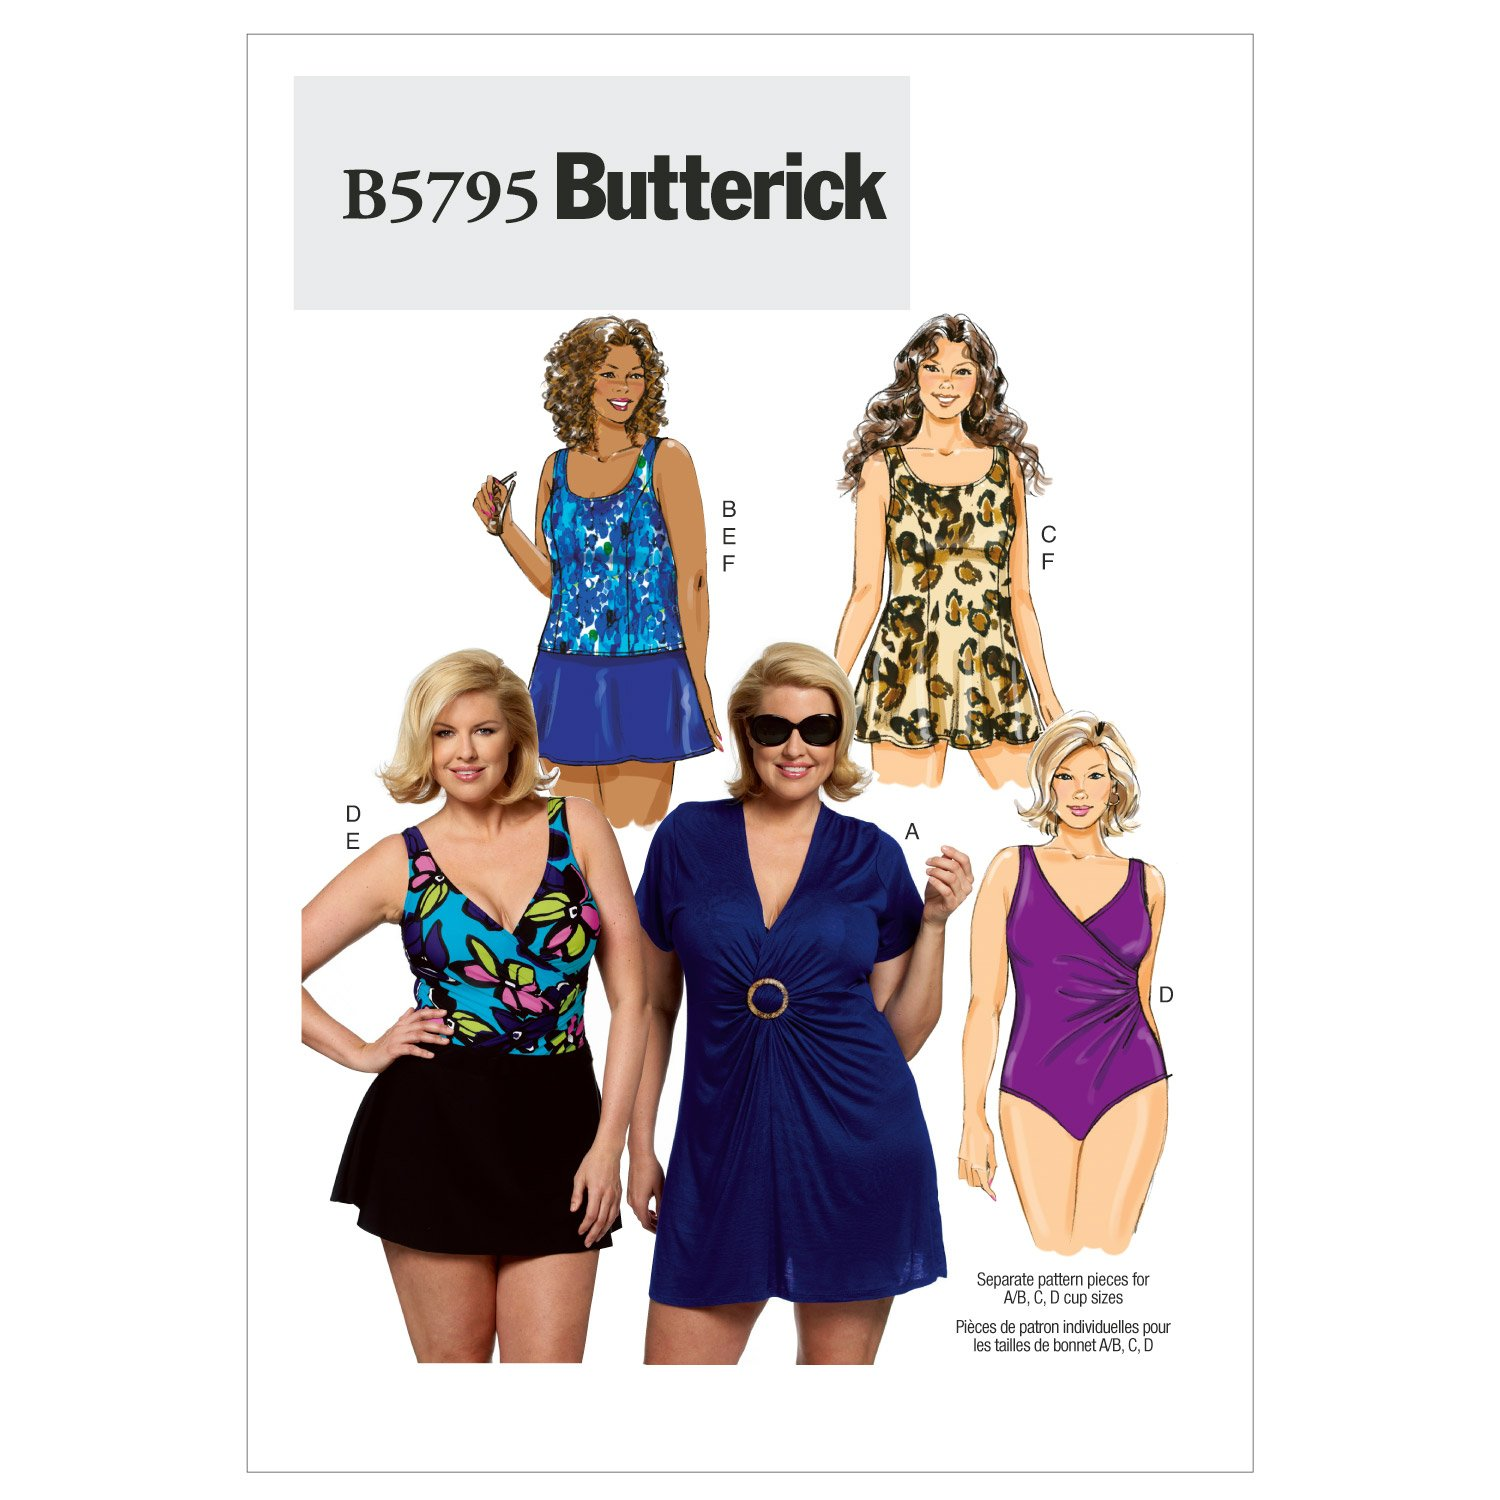 Butterick Patterns B5795 Size RR 18W-20W-22W-24W Womens Cover-Up Top Swimdress Swimsuit Skirt and Briefs, Pack of 1, White The McCall Pattern Company B5795RR0